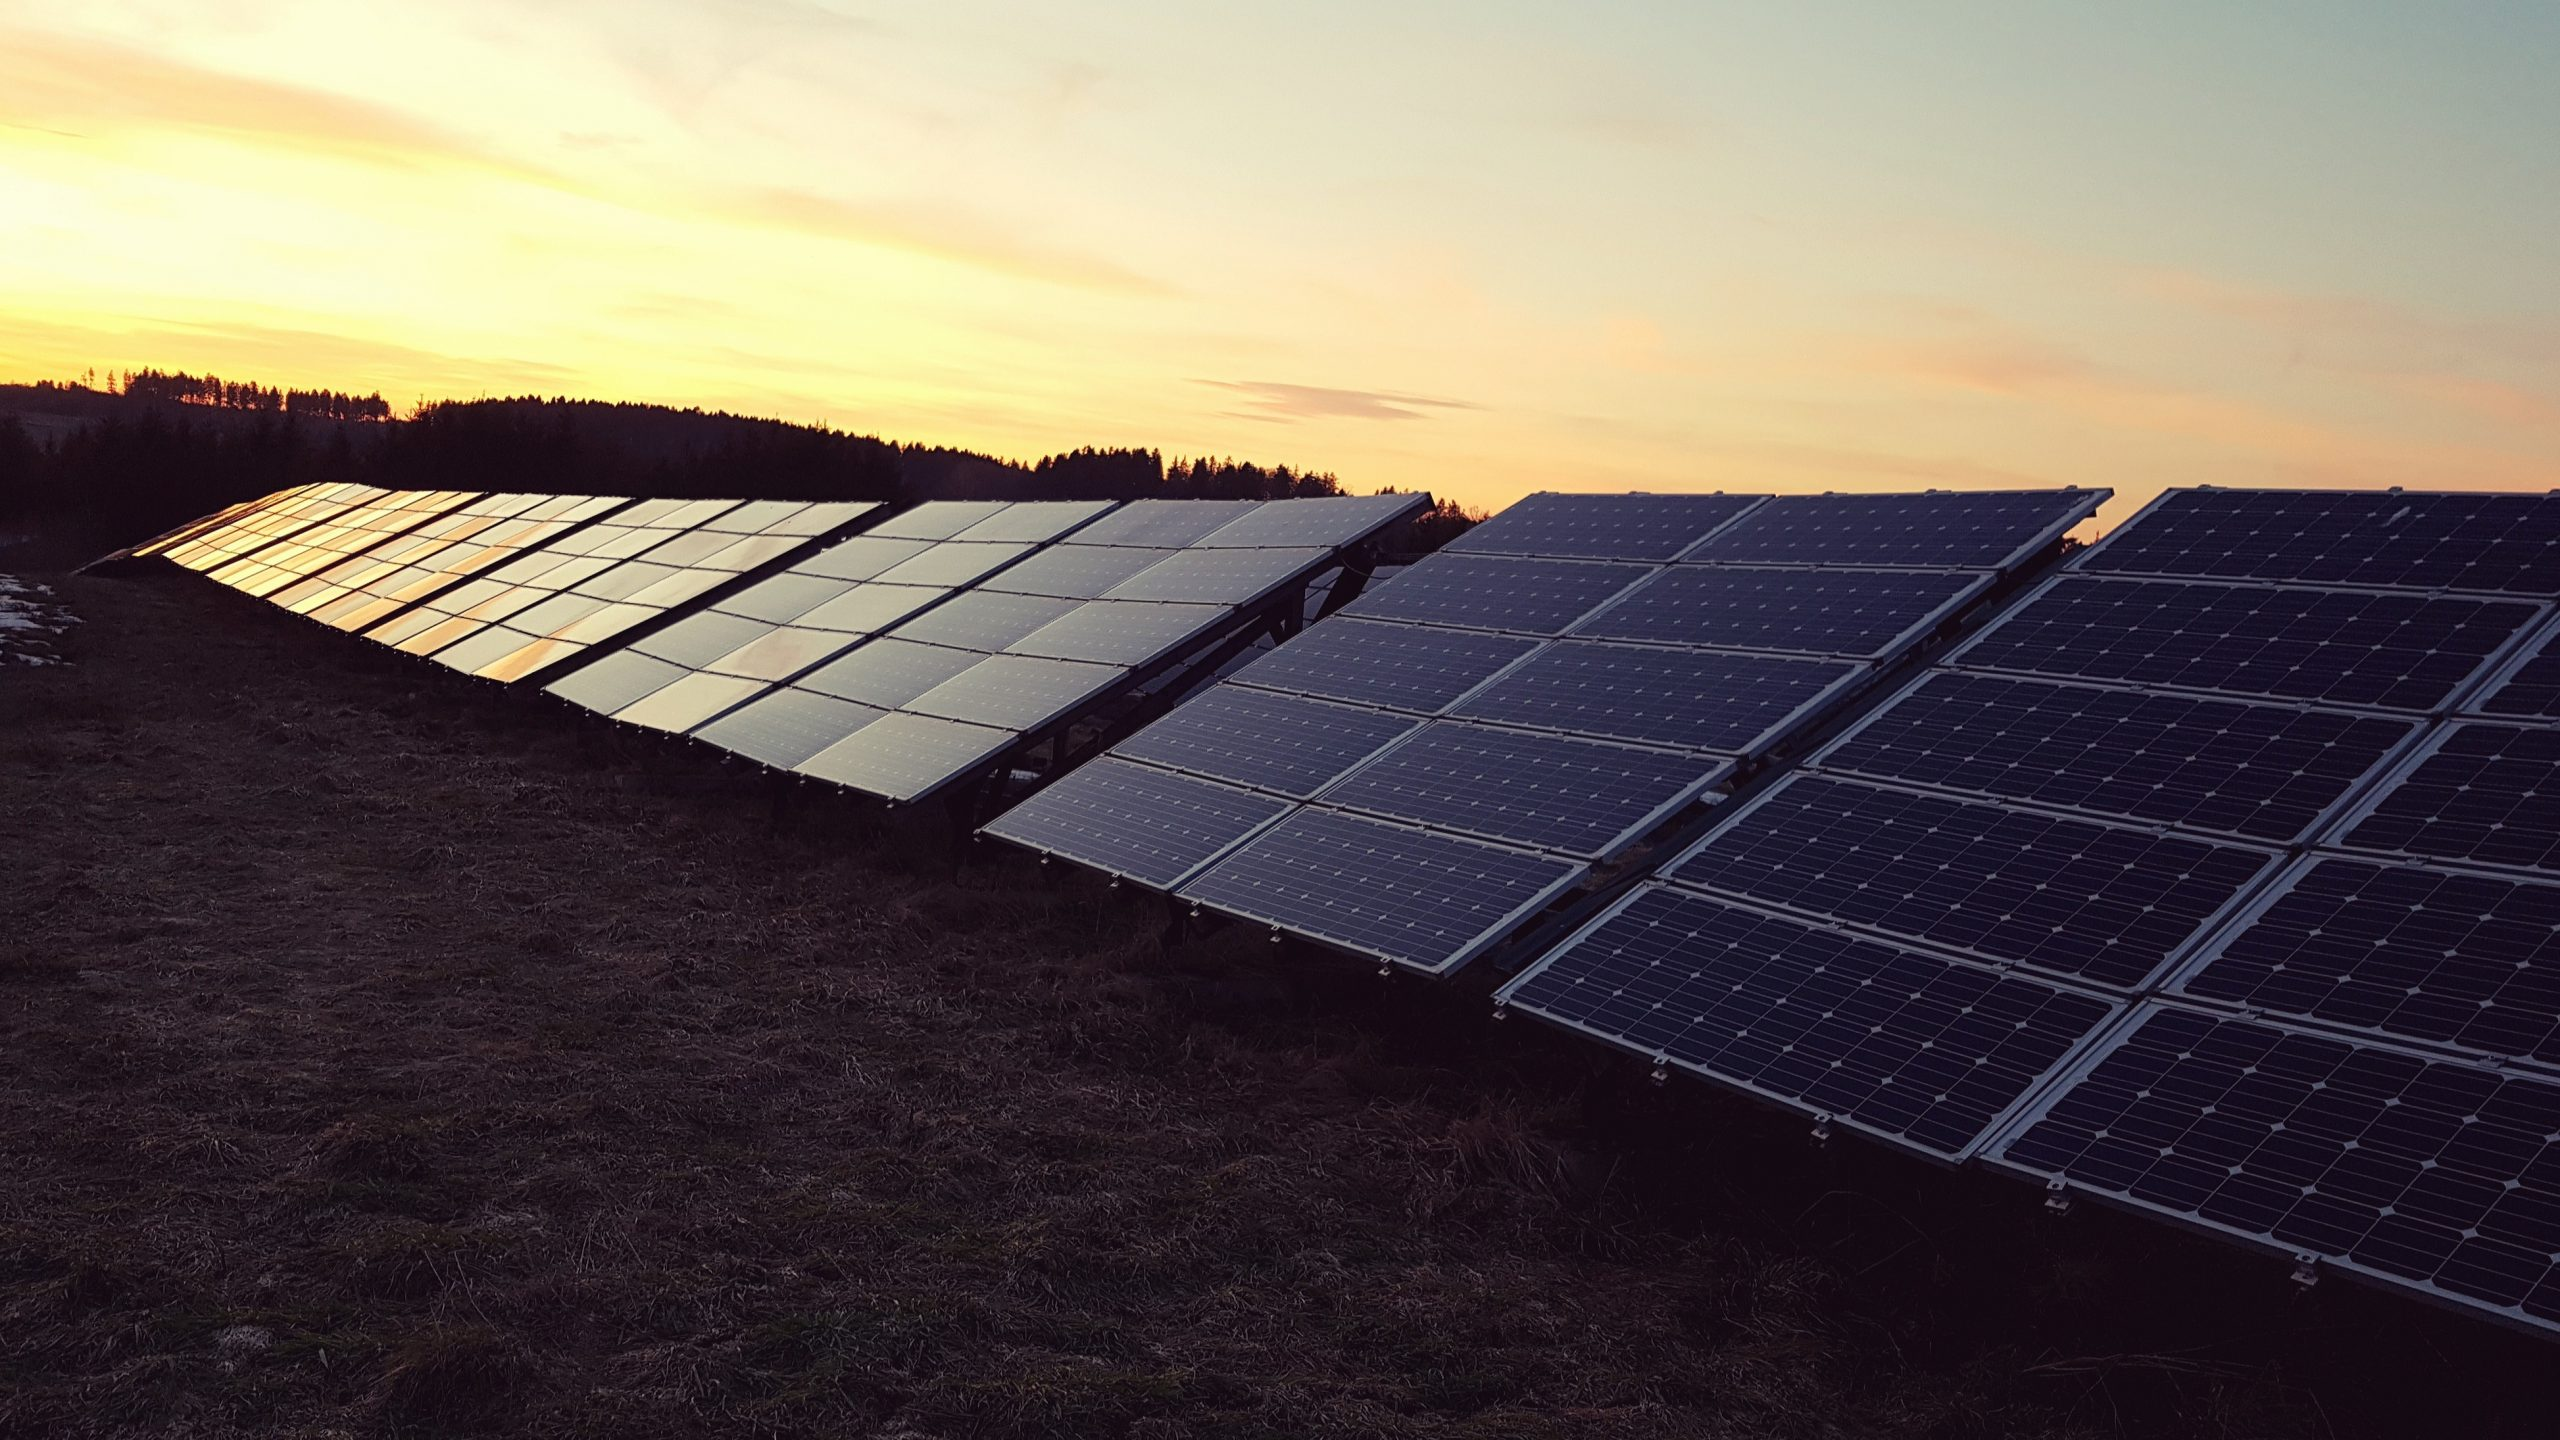 Commercial-Grade Solar Energy Offers Big Wins for Businesses with Professional Commercial Solar Panel Installation by Solar Sam